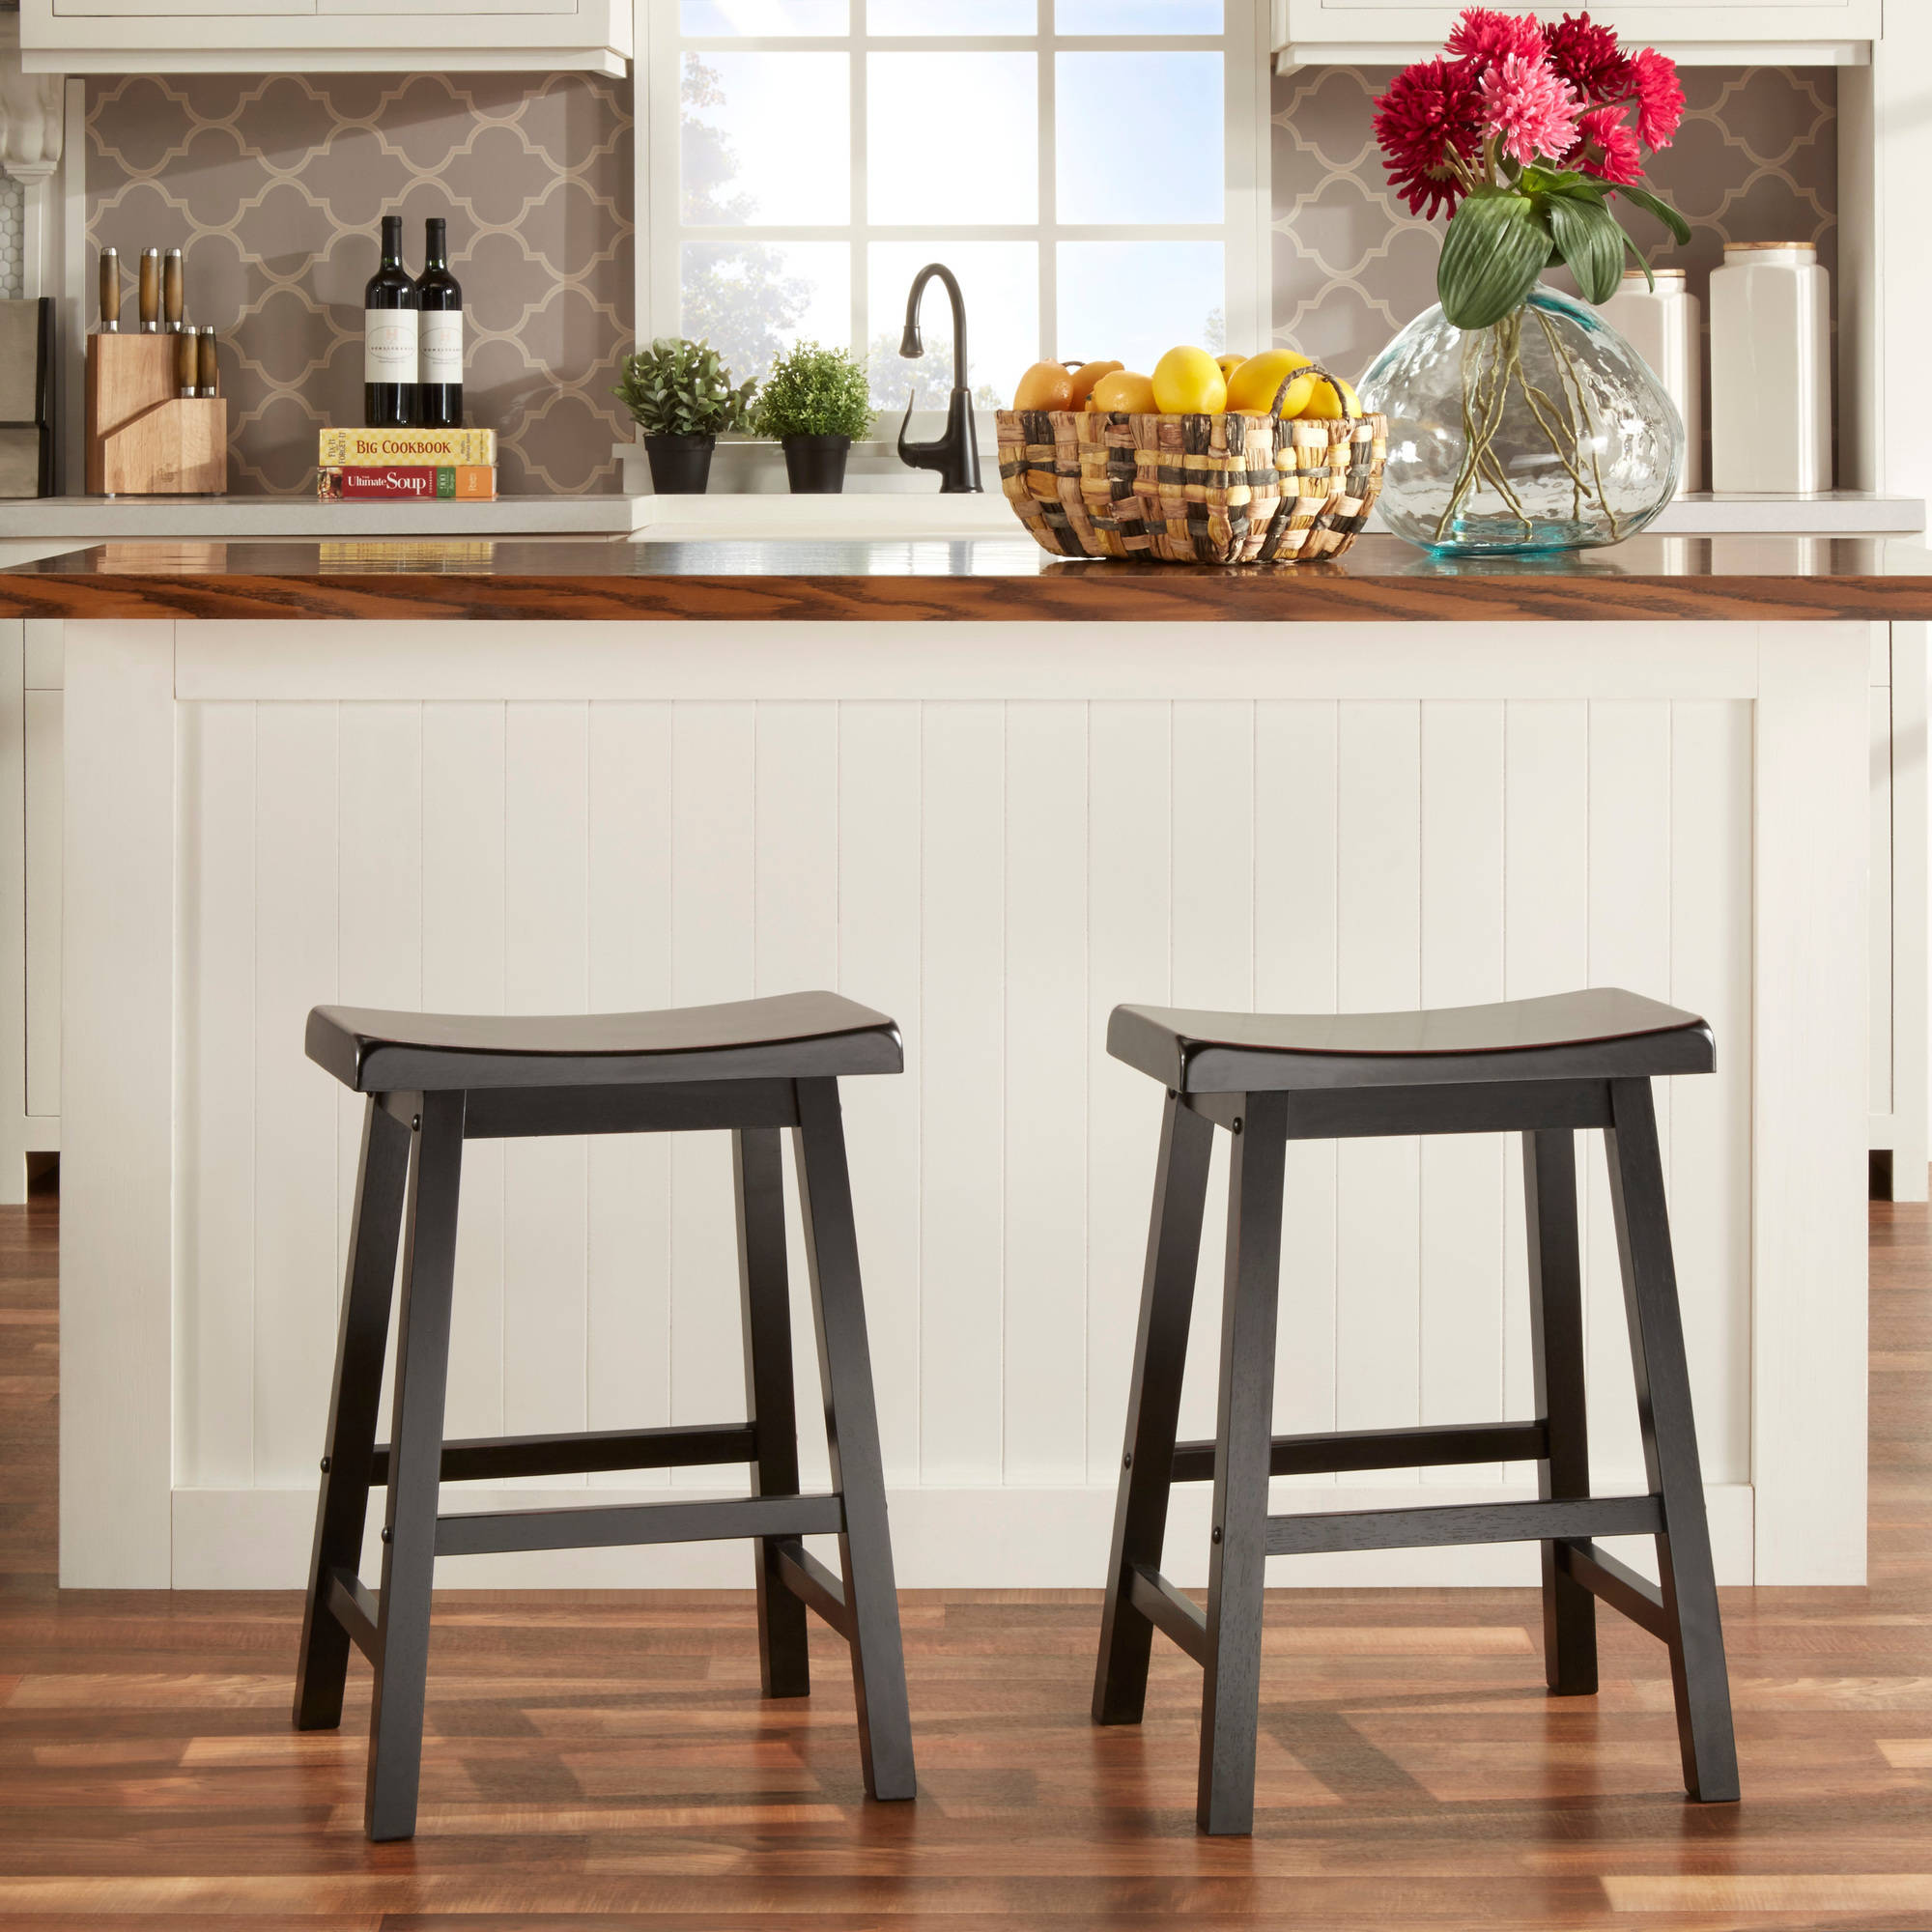 "Ashby Counter Stools 24"", Set of 2, Black Rubbed"